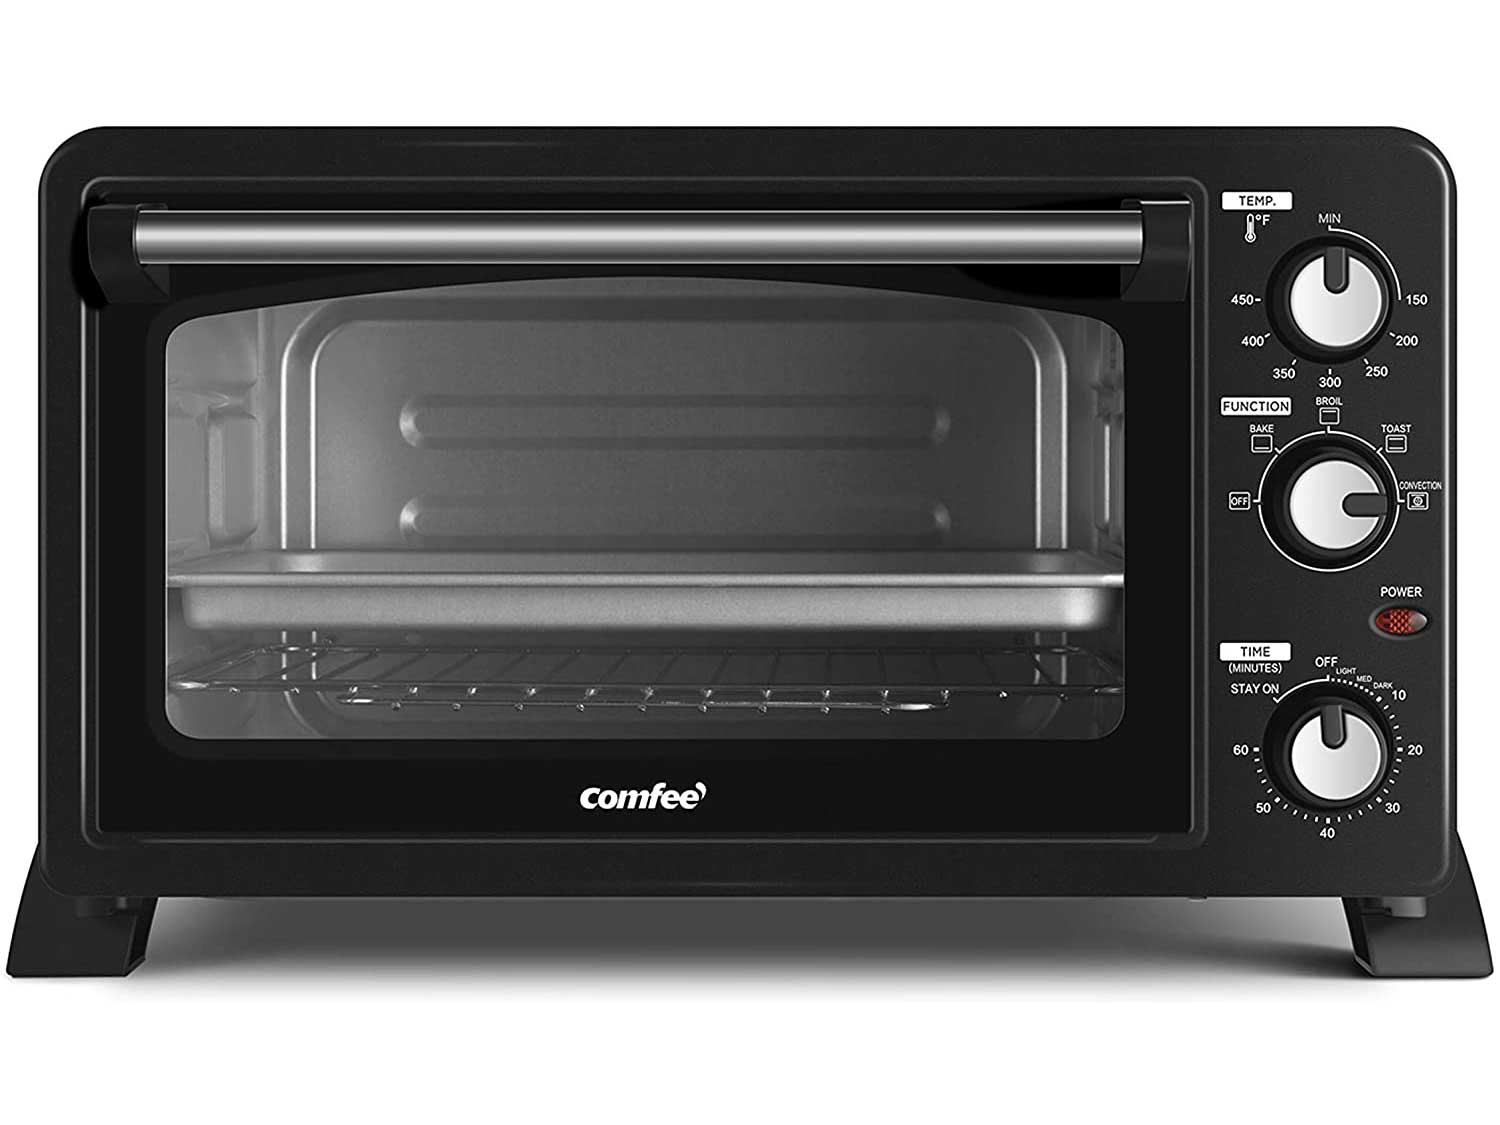 COMFEE' 6-Slice Toaster Oven Countertop with Convection, 1500W, Bake-Broil-Toast Setting, Includes Baking Pan, Baking Rack and Crumb Tray, Black